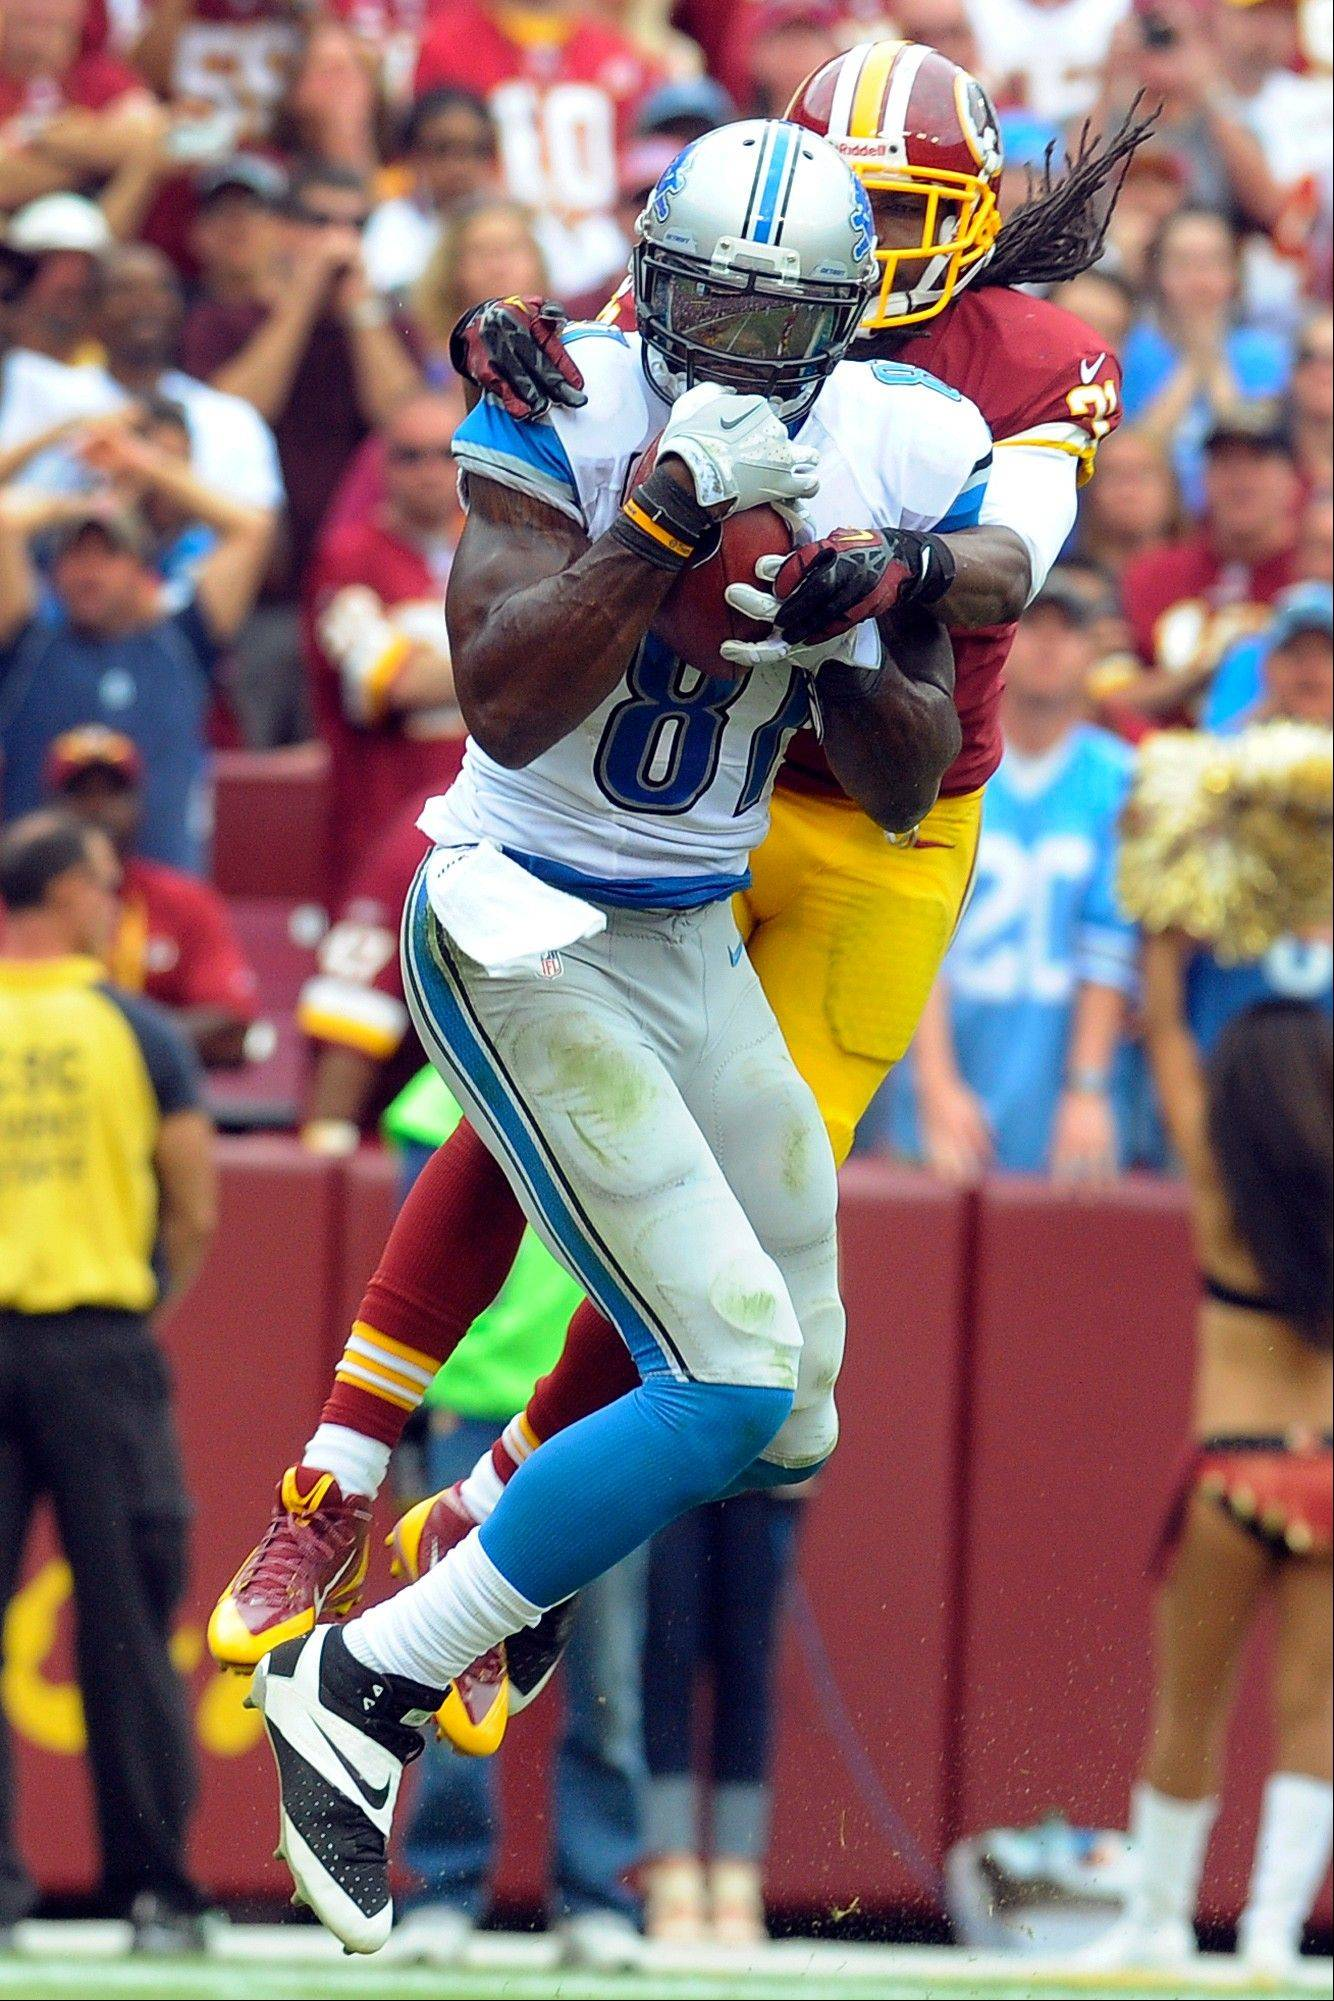 Detroit Lions wide receiver Calvin Johnson pulls in a touchdown pass under pressure from Washington Redskins strong safety Brandon Meriweather during the second half of a Sept. 22 game in Landover, Md.